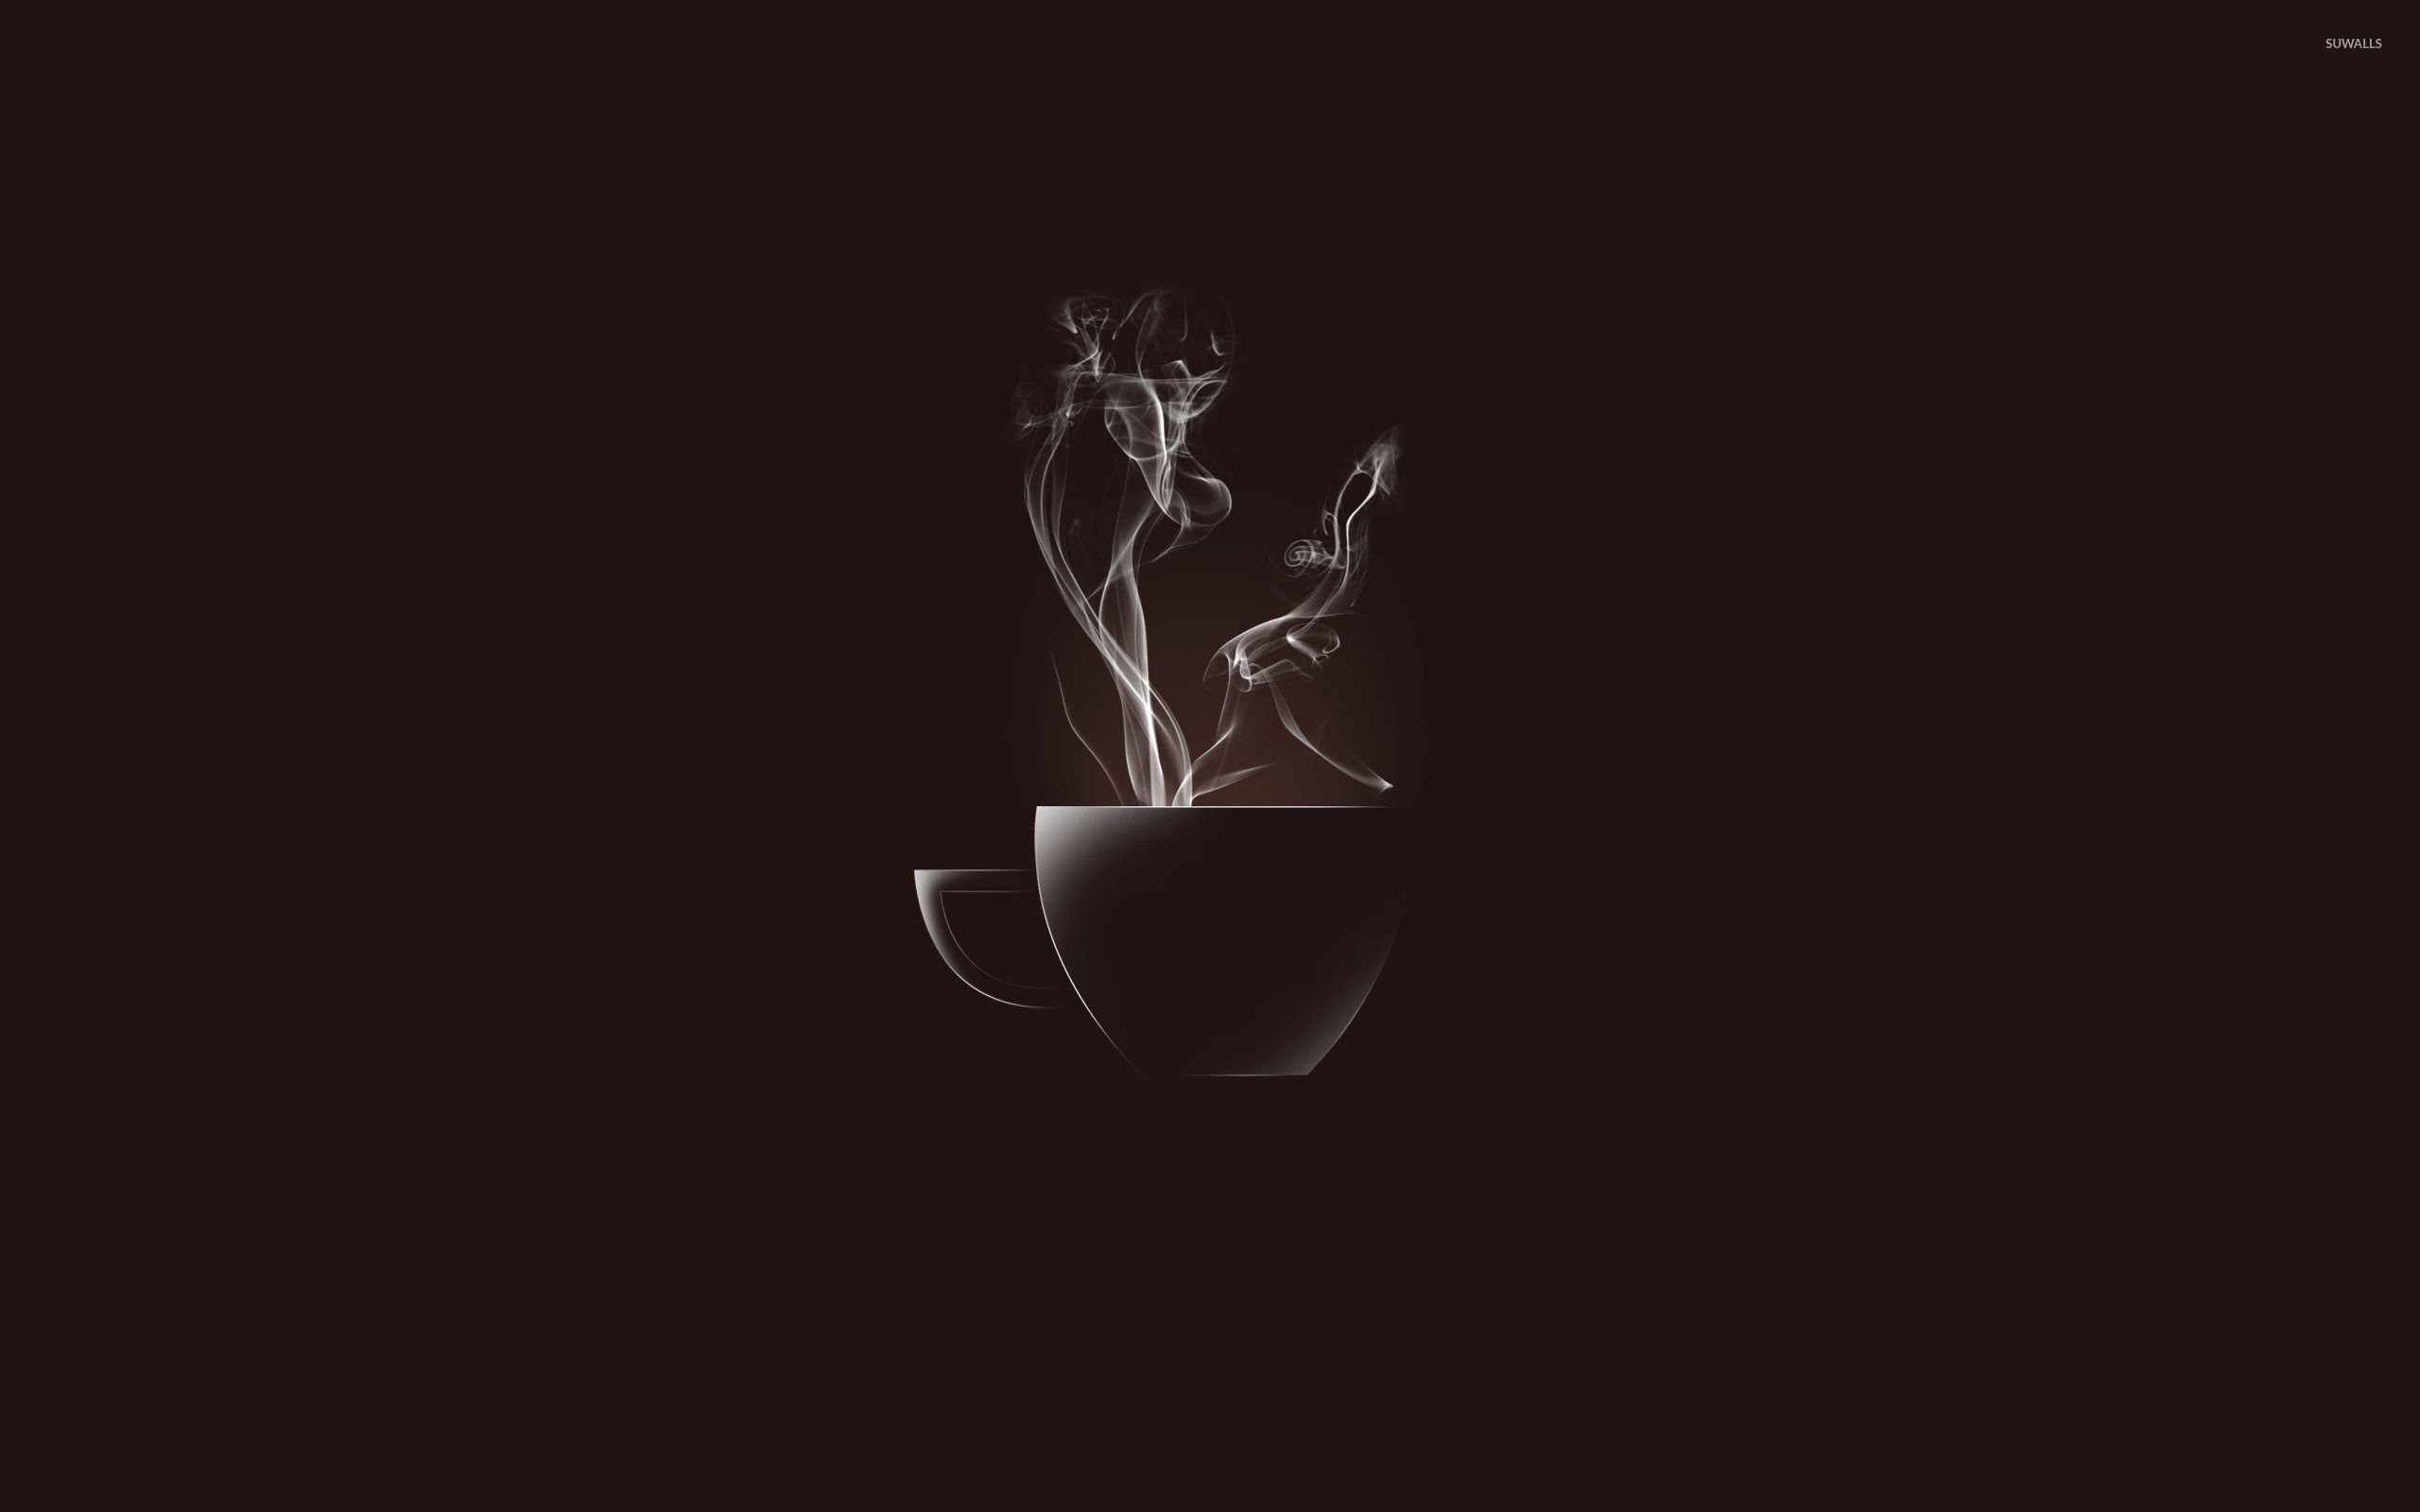 Hot Coffee Cup Wallpaper Minimalistic Wallpapers 53505